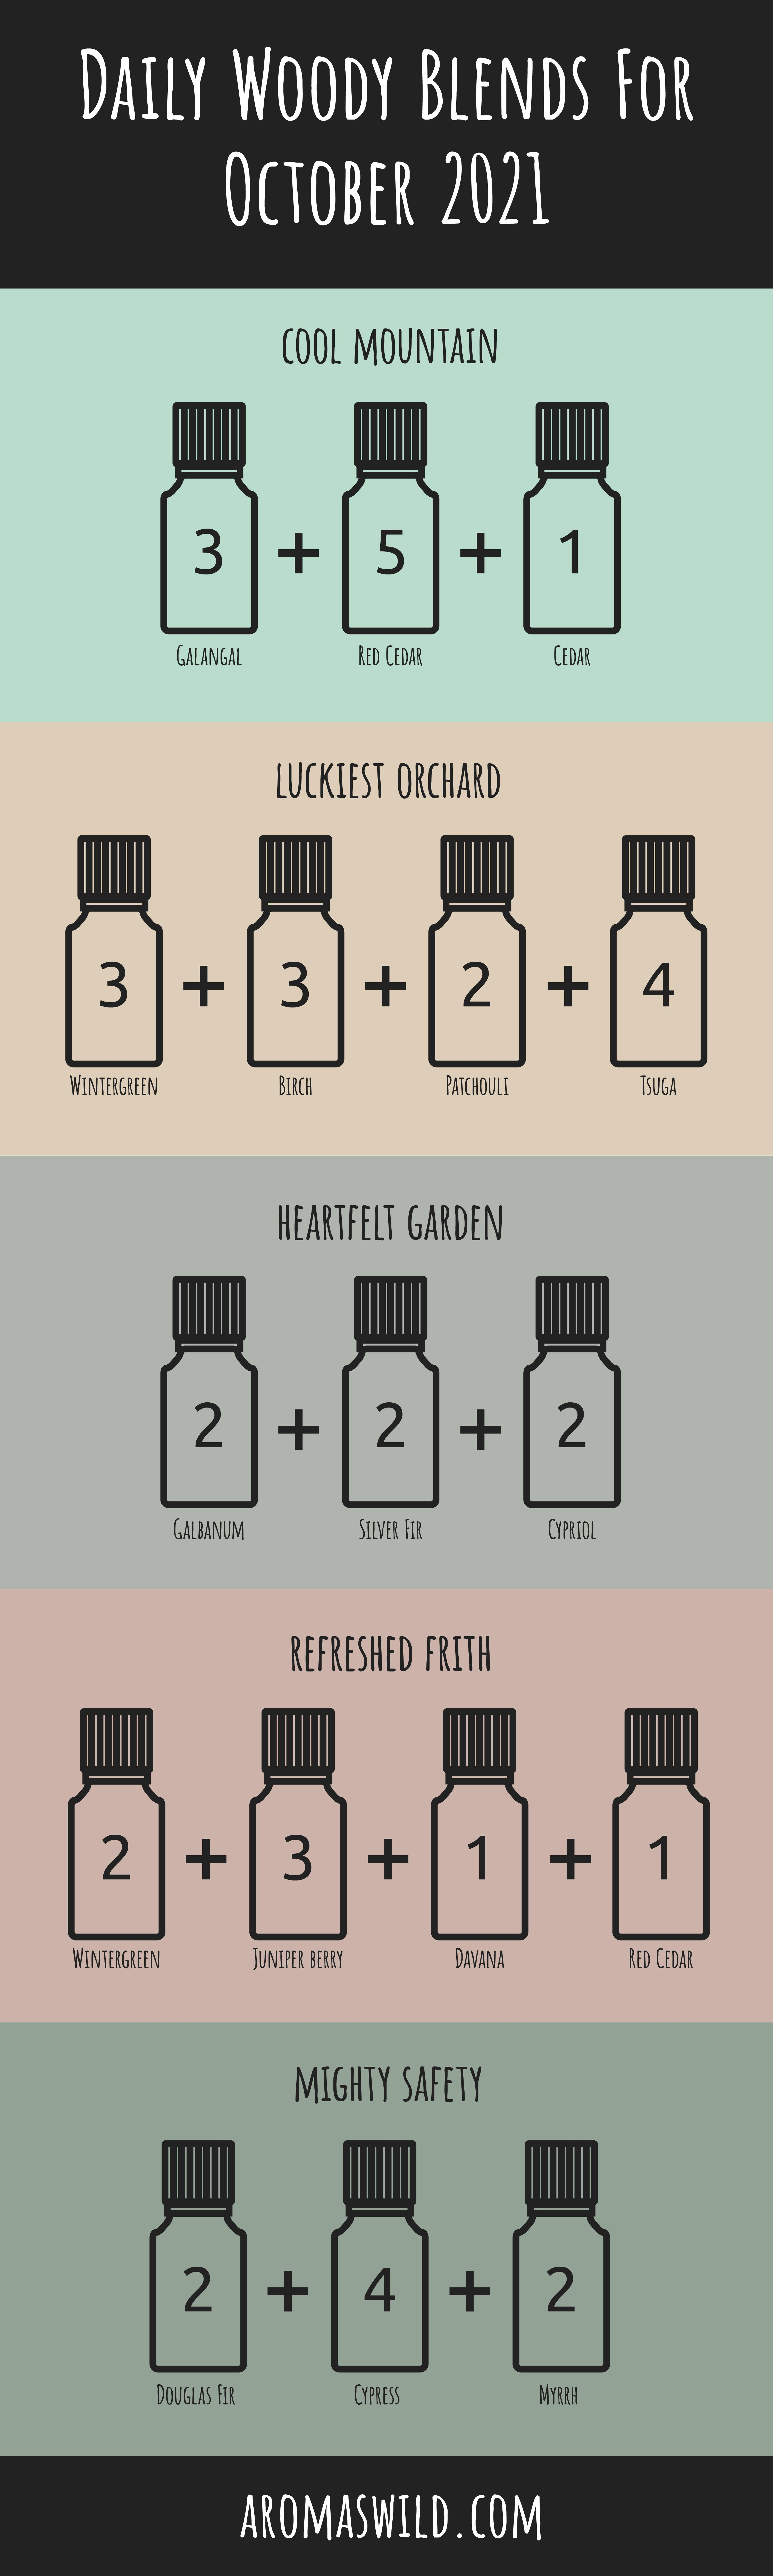 Top Oil Blends Diffuser – Daily Woody Blends For 16 October 2021